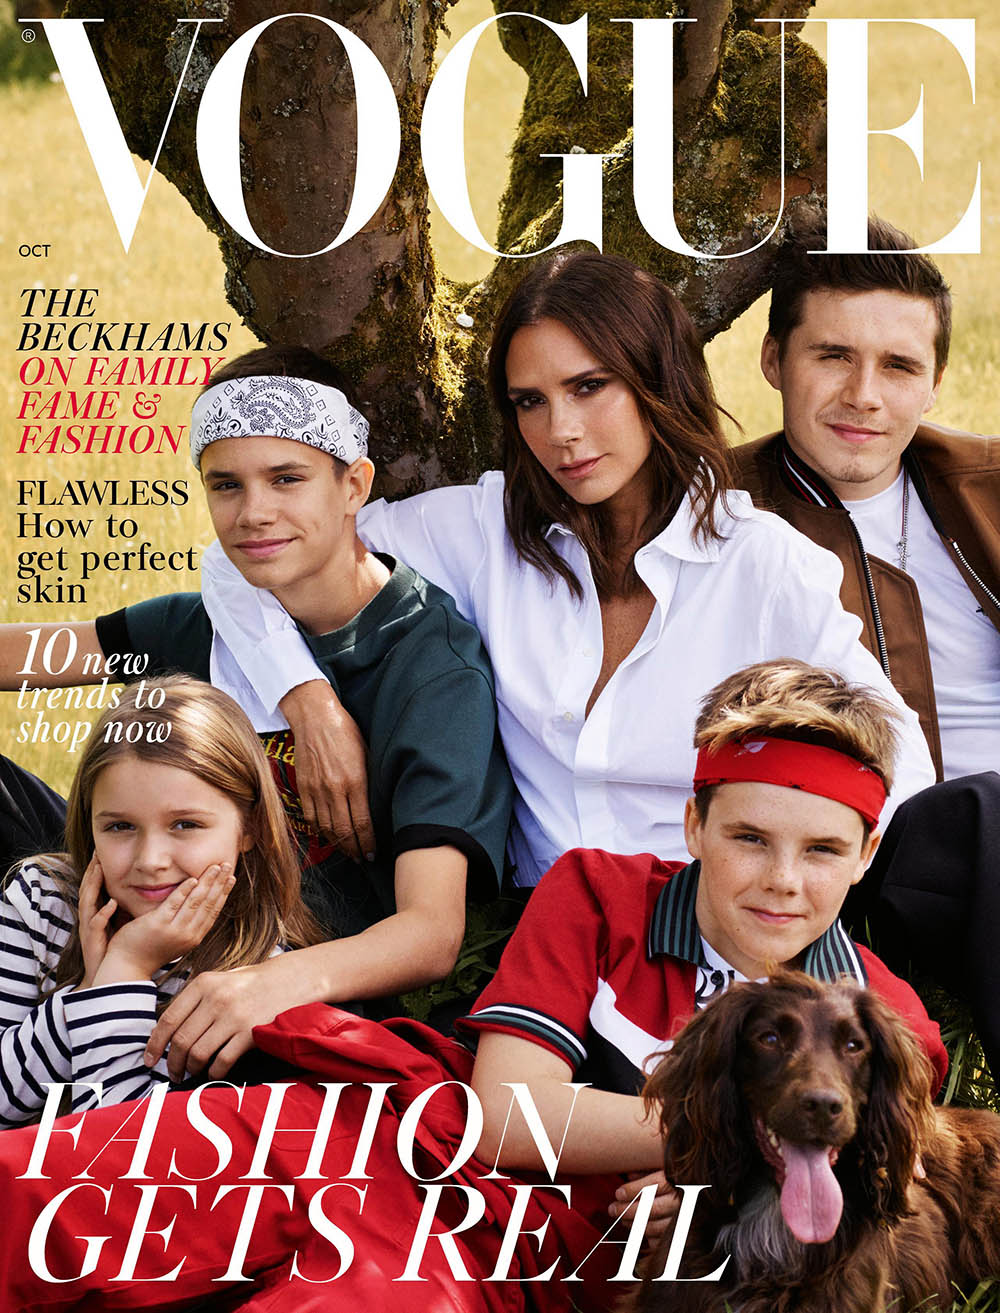 The Beckhams cover British Vogue October 2018 by Mikael Jansson